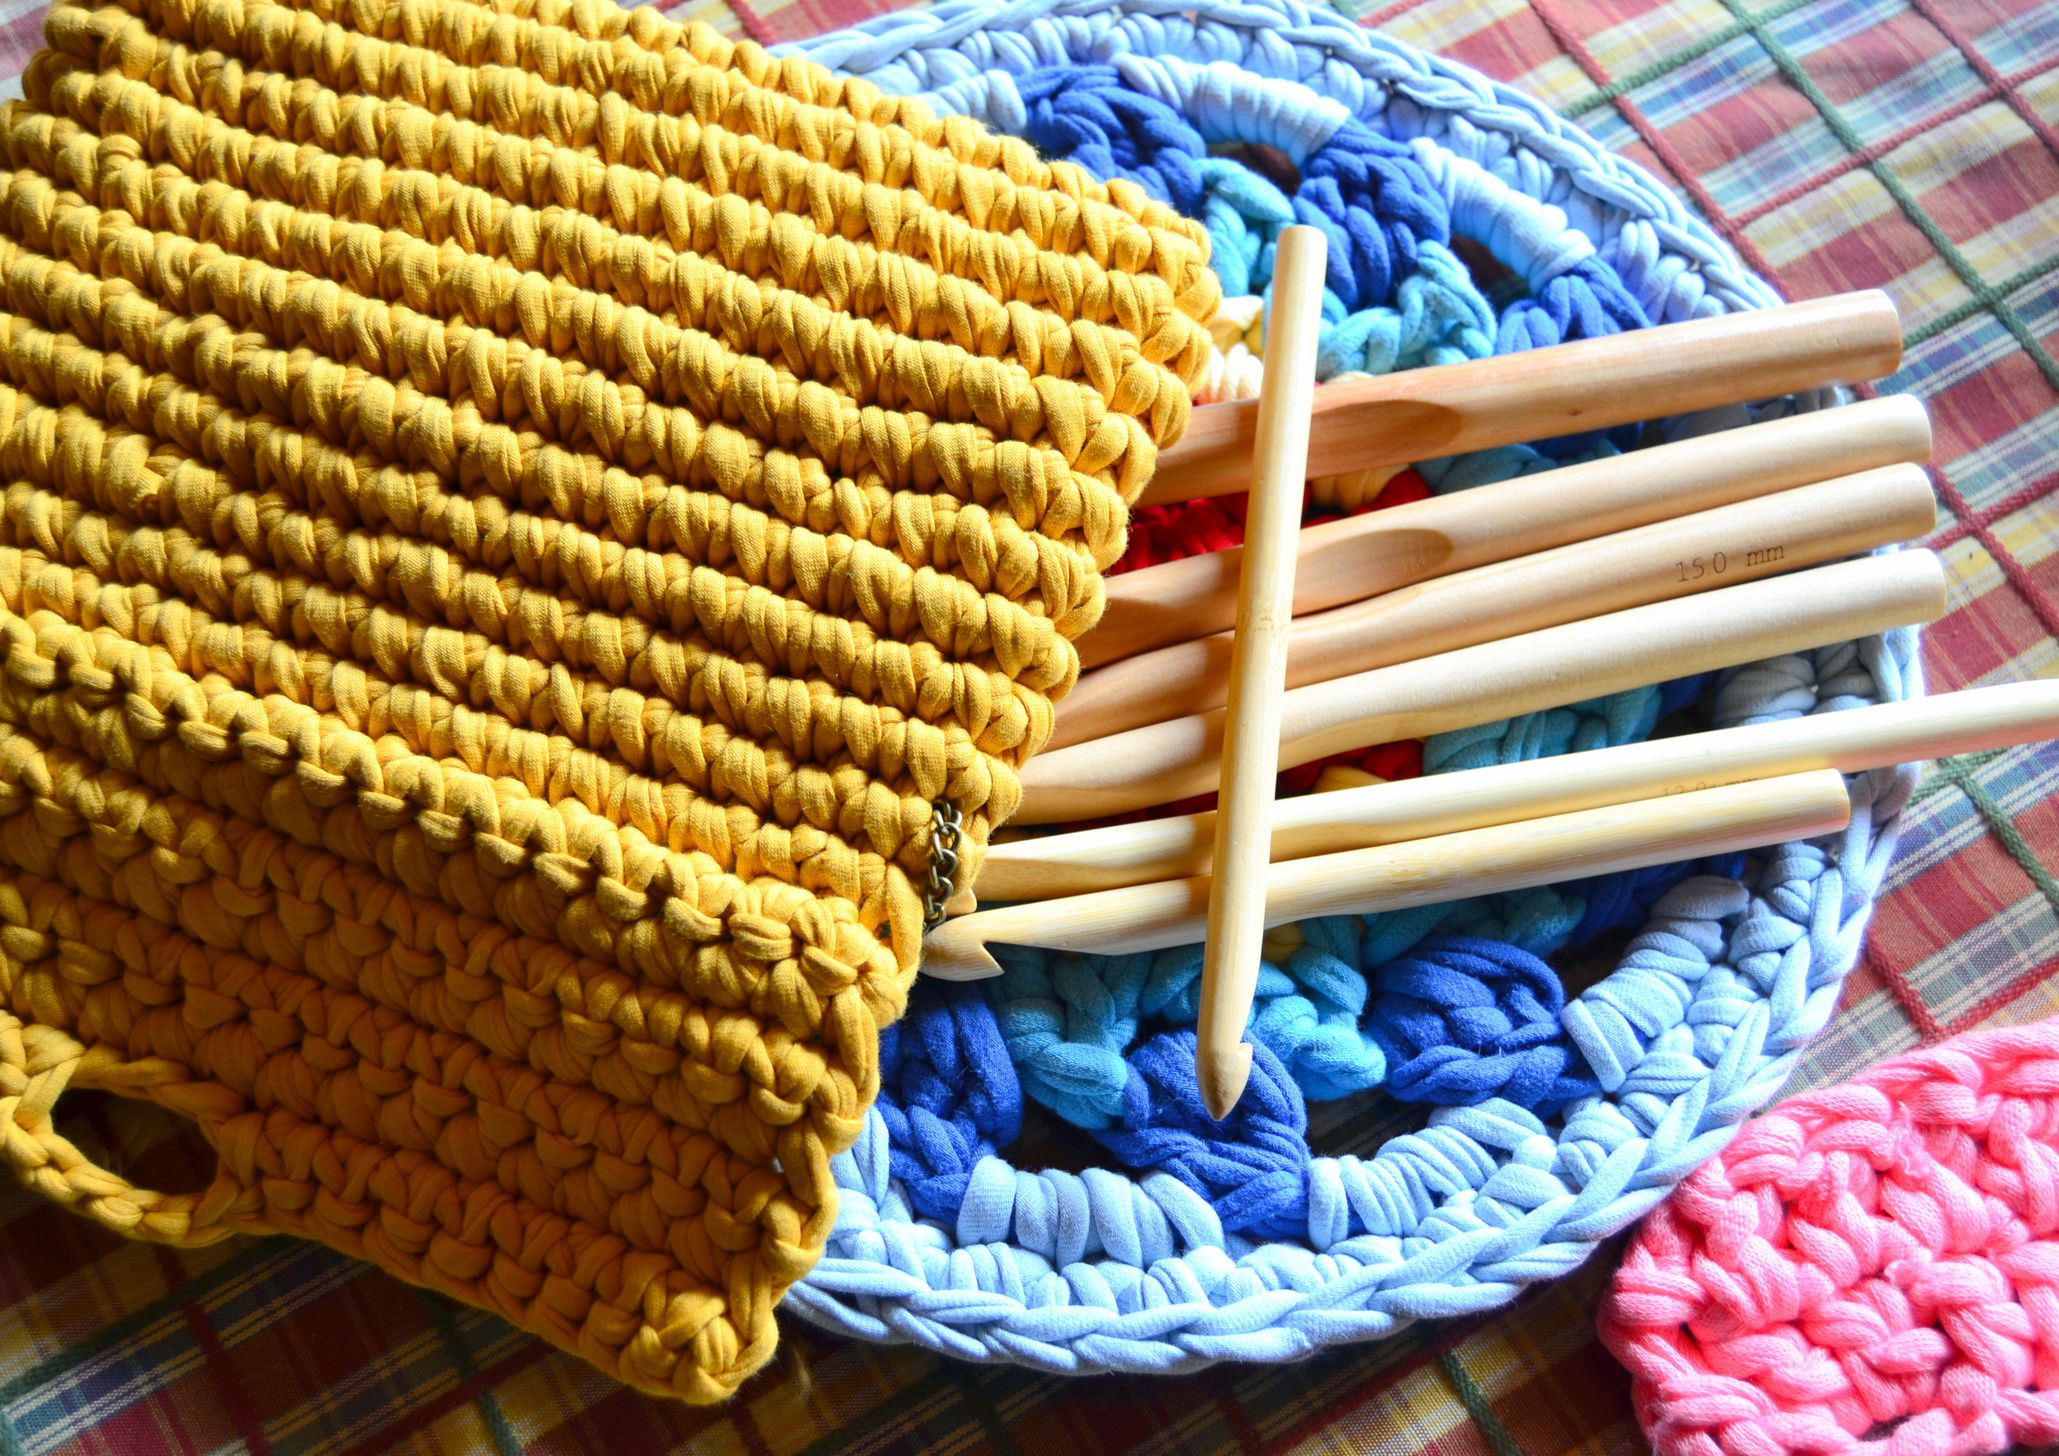 Crochet Dishcloths Free Patterns  Easy Crochet Dishcloth Free Pattern